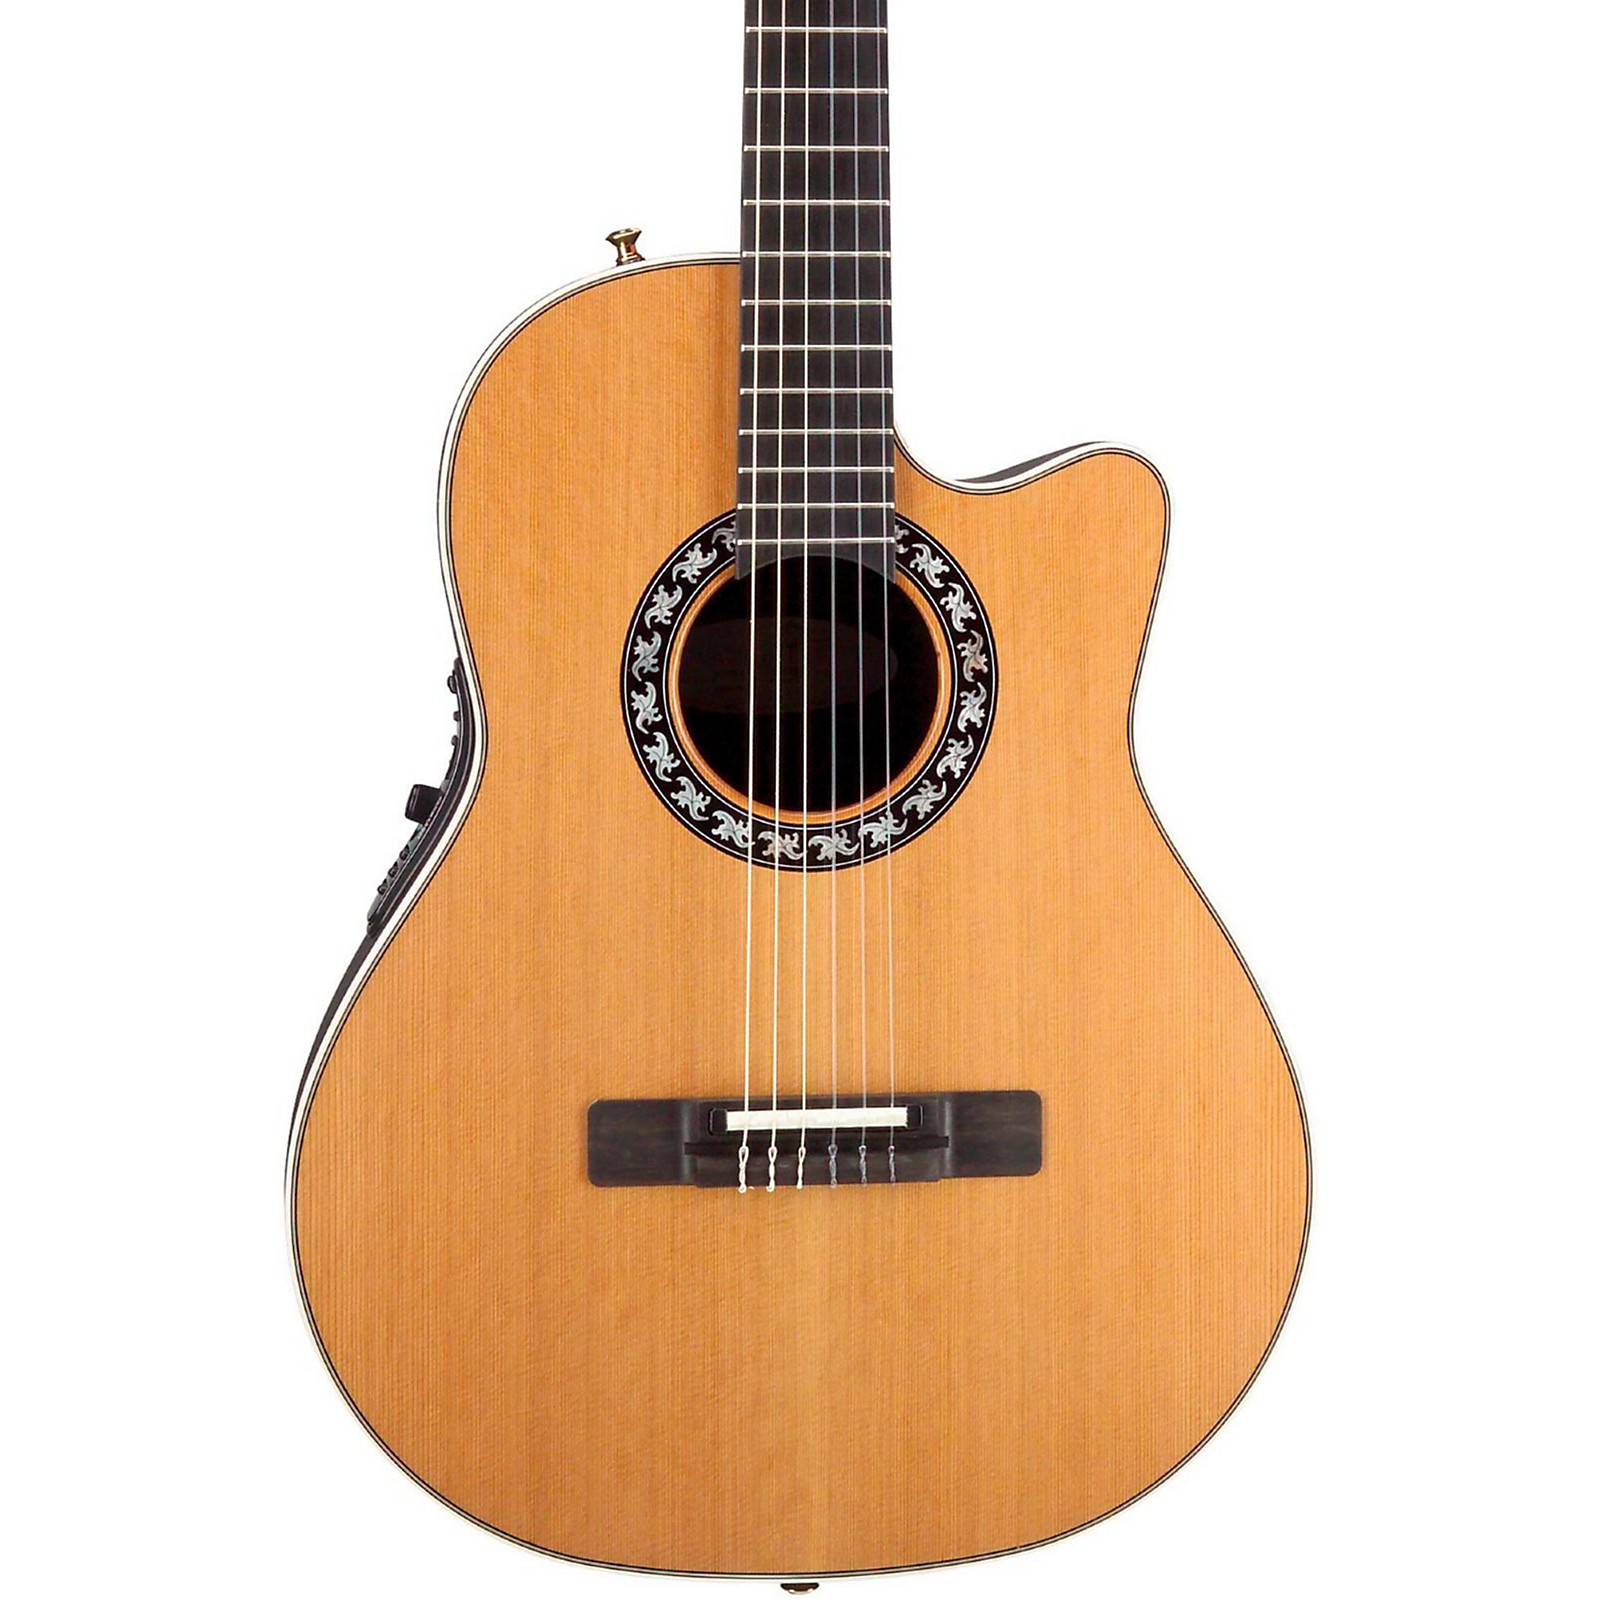 Ovation Timeless Legend Nylon String Acoustic-Electric Guitar